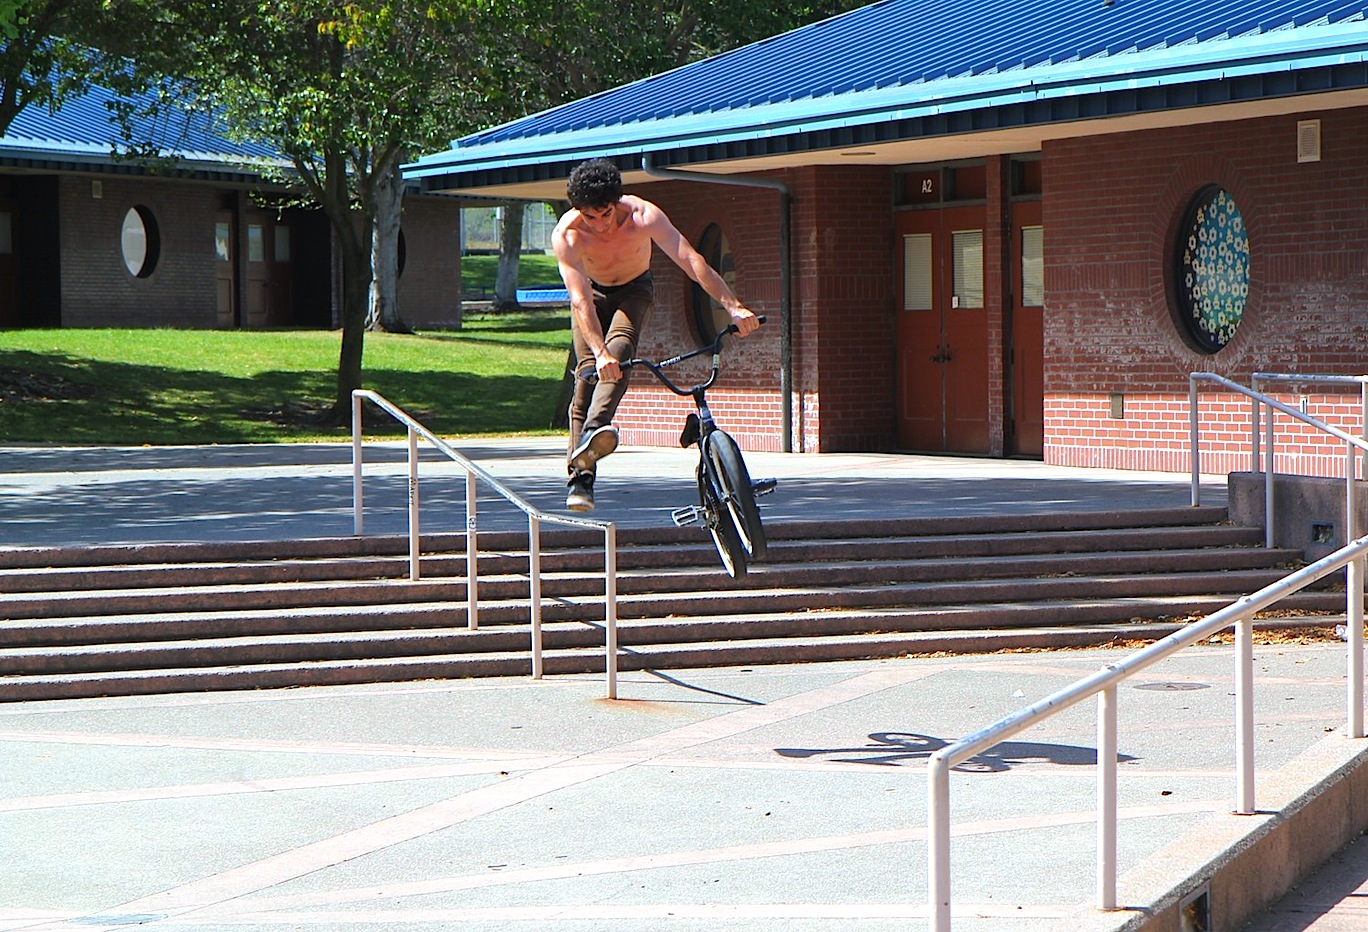 Jonas-down-rail-to-no-foot-can